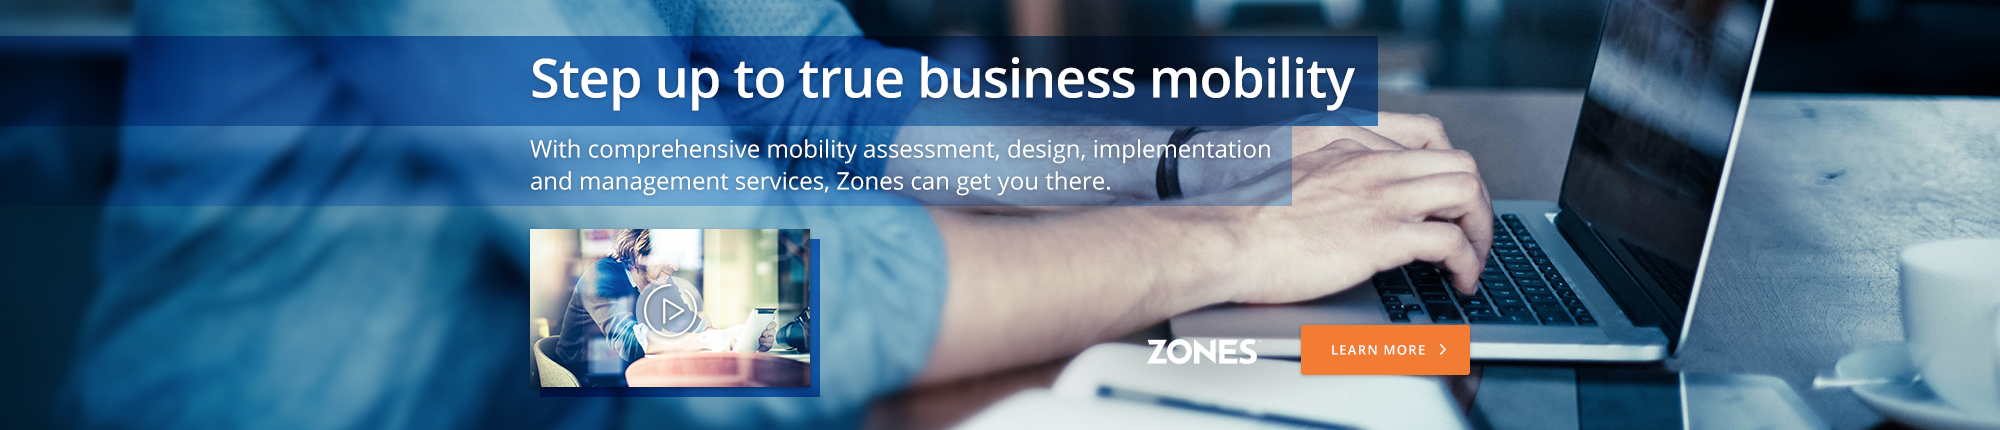 Step up to true business mobility